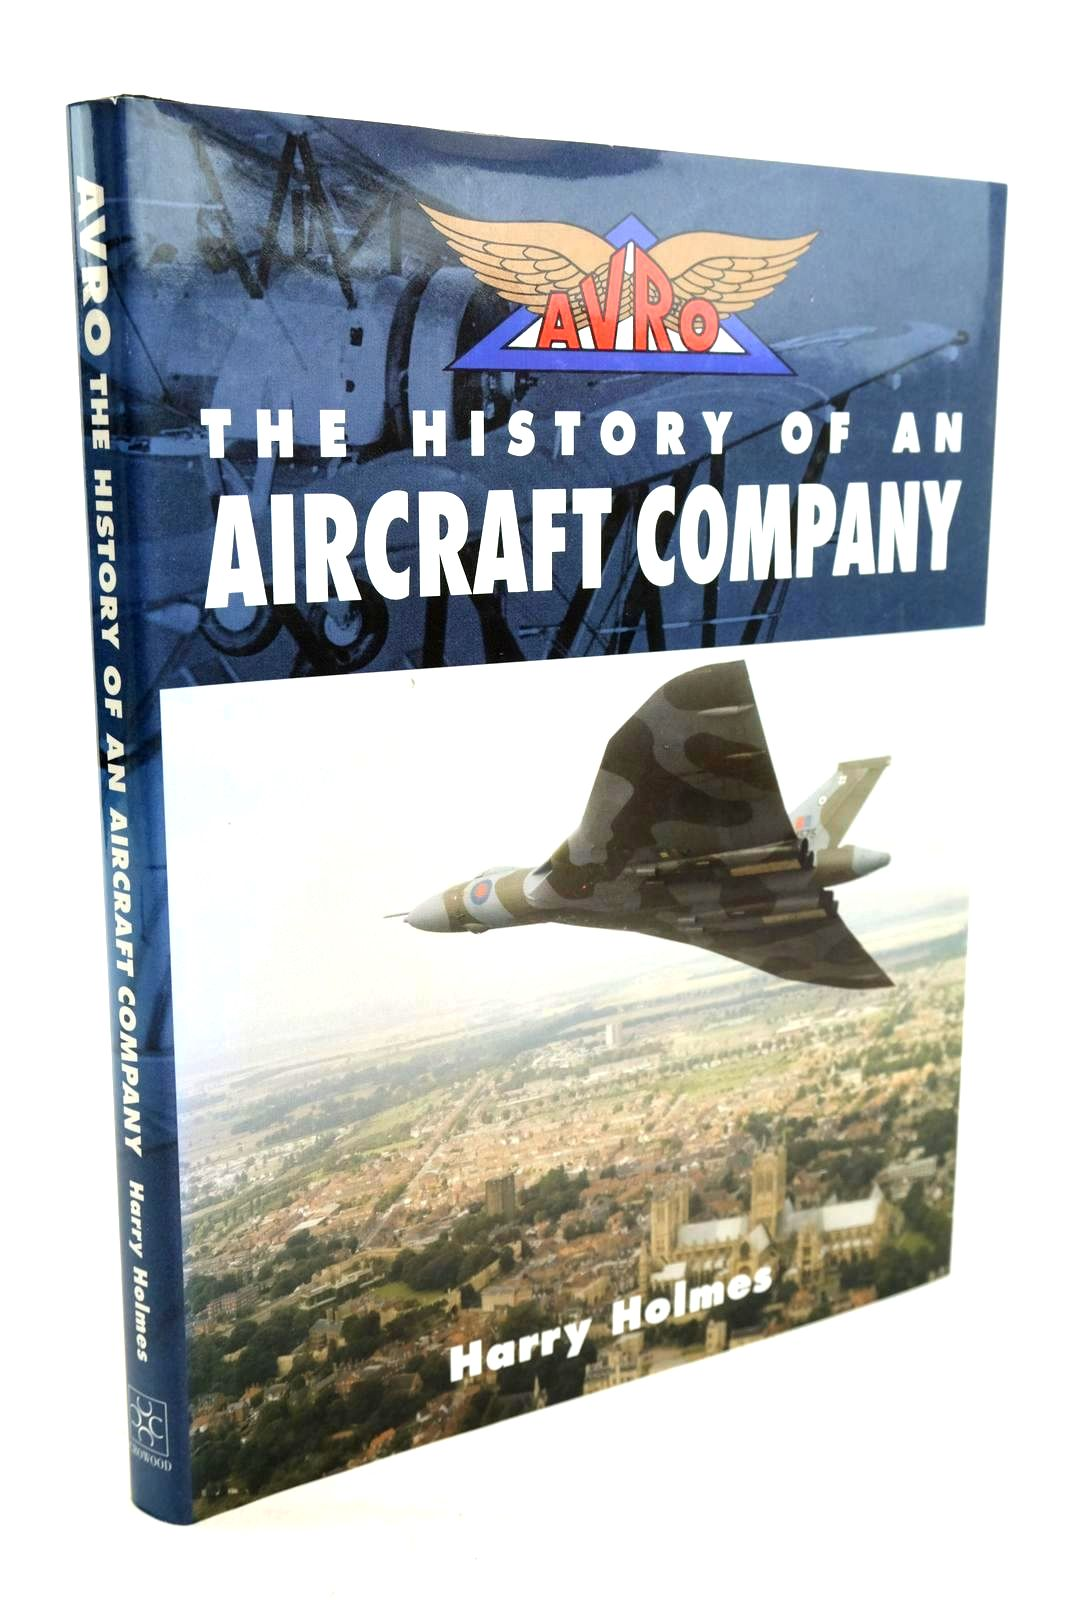 Photo of AVRO THE HISTORY OF AN AIRCRAFT COMPANY- Stock Number: 1320288